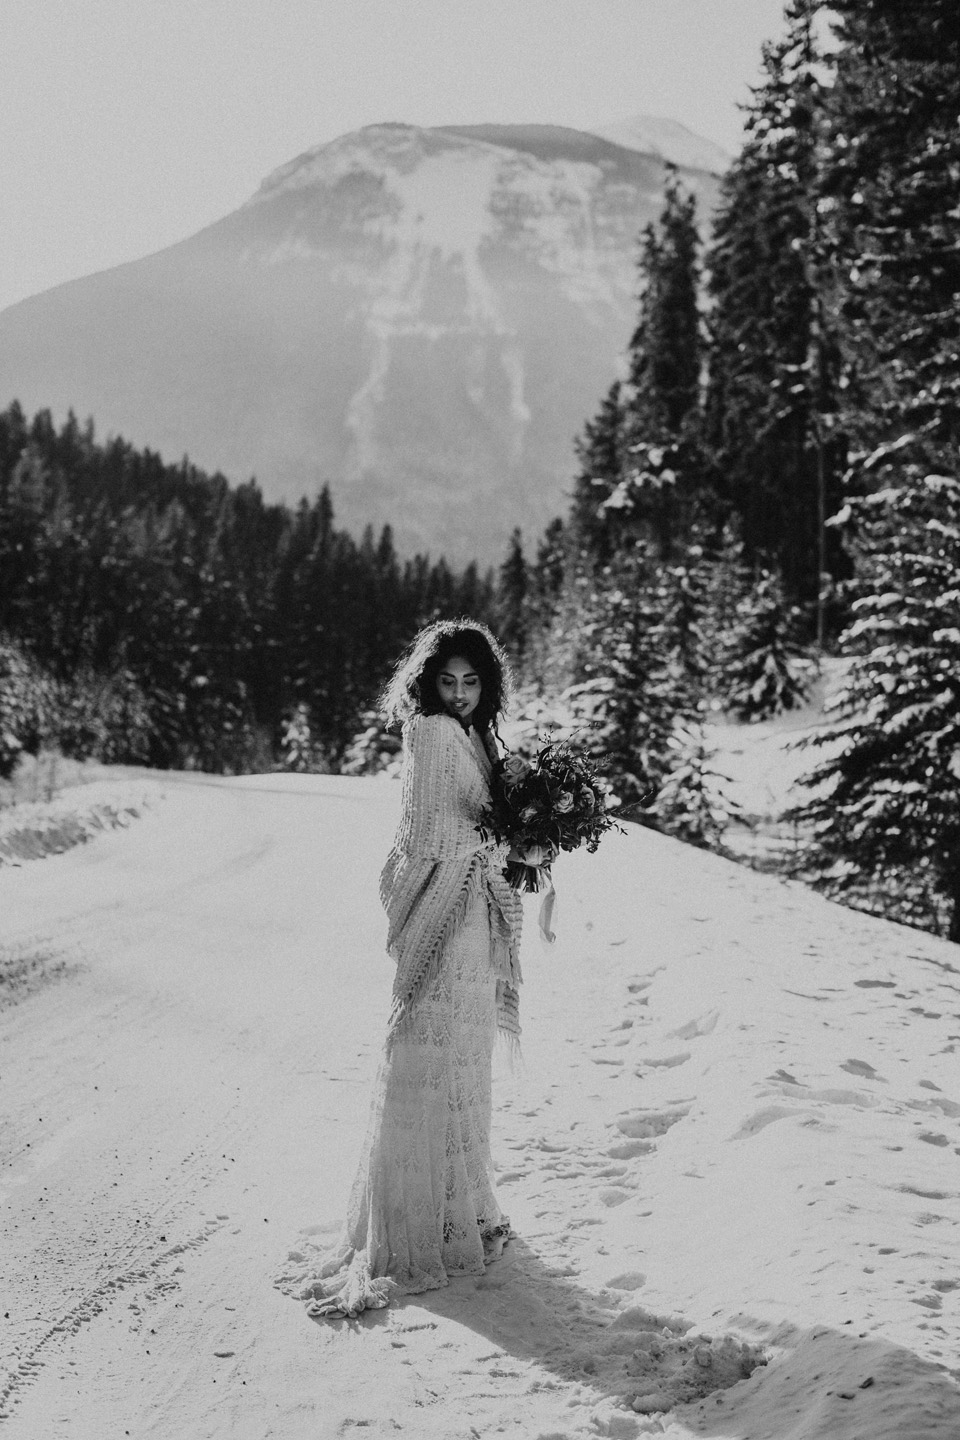 Winter Mountain Bohemain Bridal Inspiration - Michelle Larmand Photography - Banff Wedding Photography -001